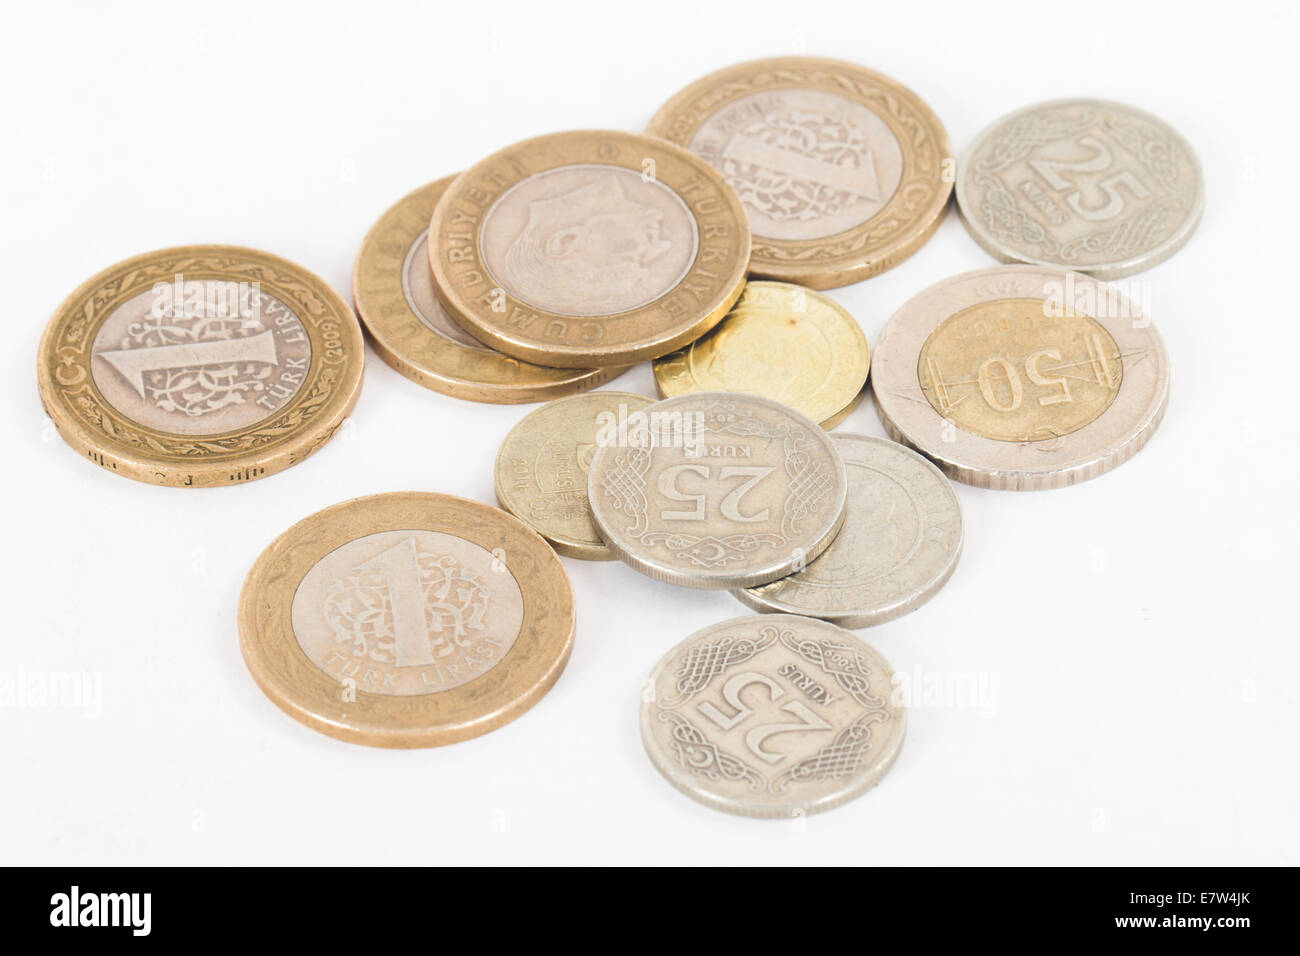 Turkish lira coins, isolated on white background. Stock Photo